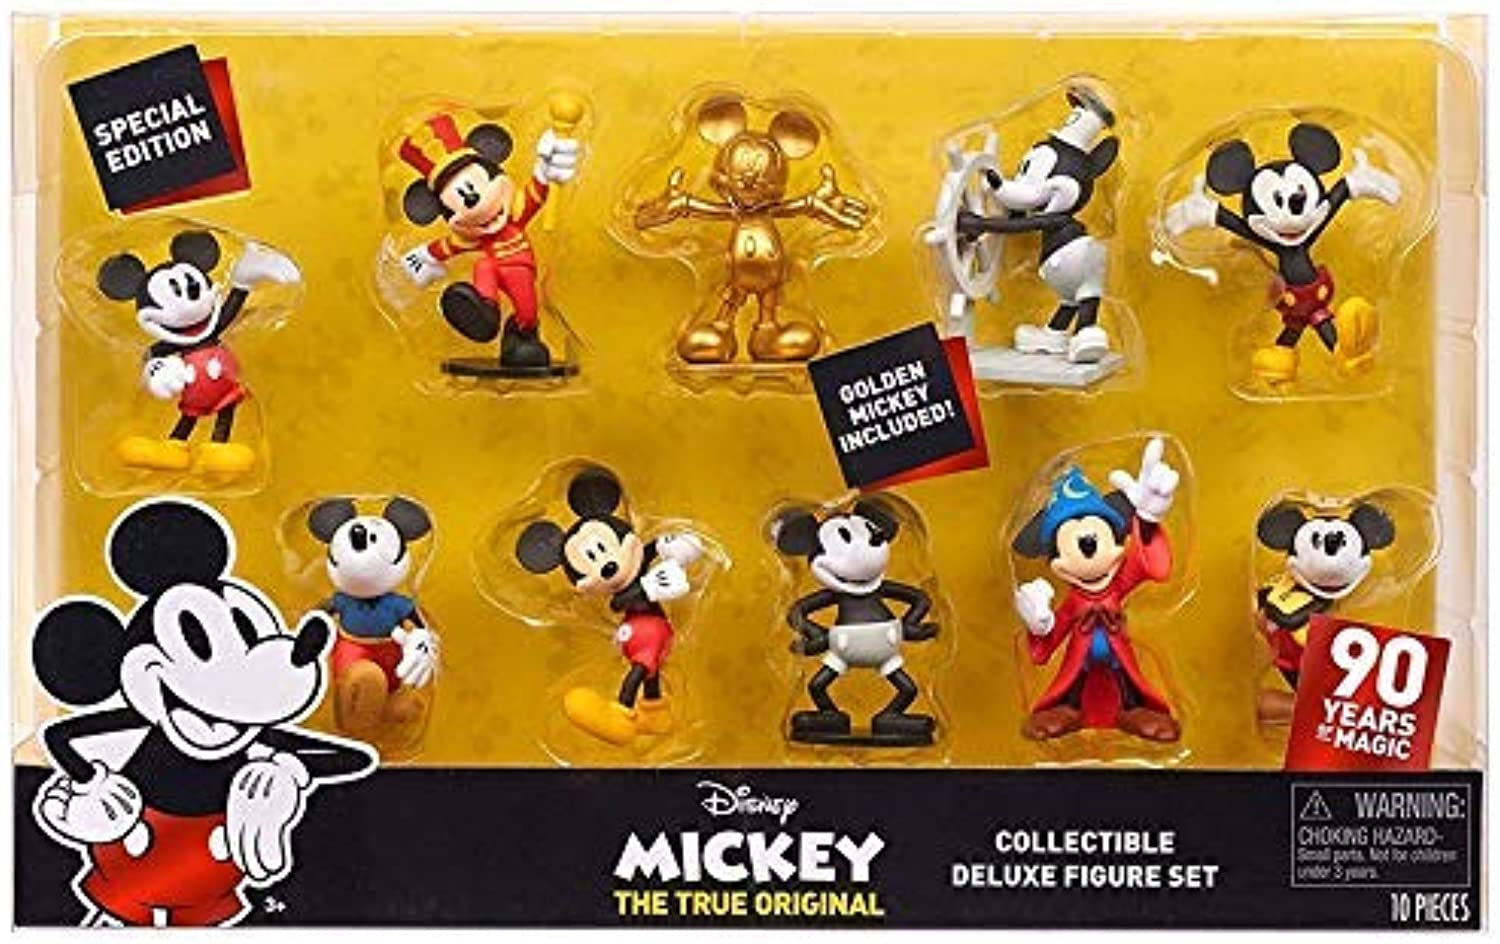 Special Edition 90 Years of Magic  DISNEY MICKEY THE TRUE ORIGINAL Collectible DELUXE Figure Set 10Pack  golden Mickey Included